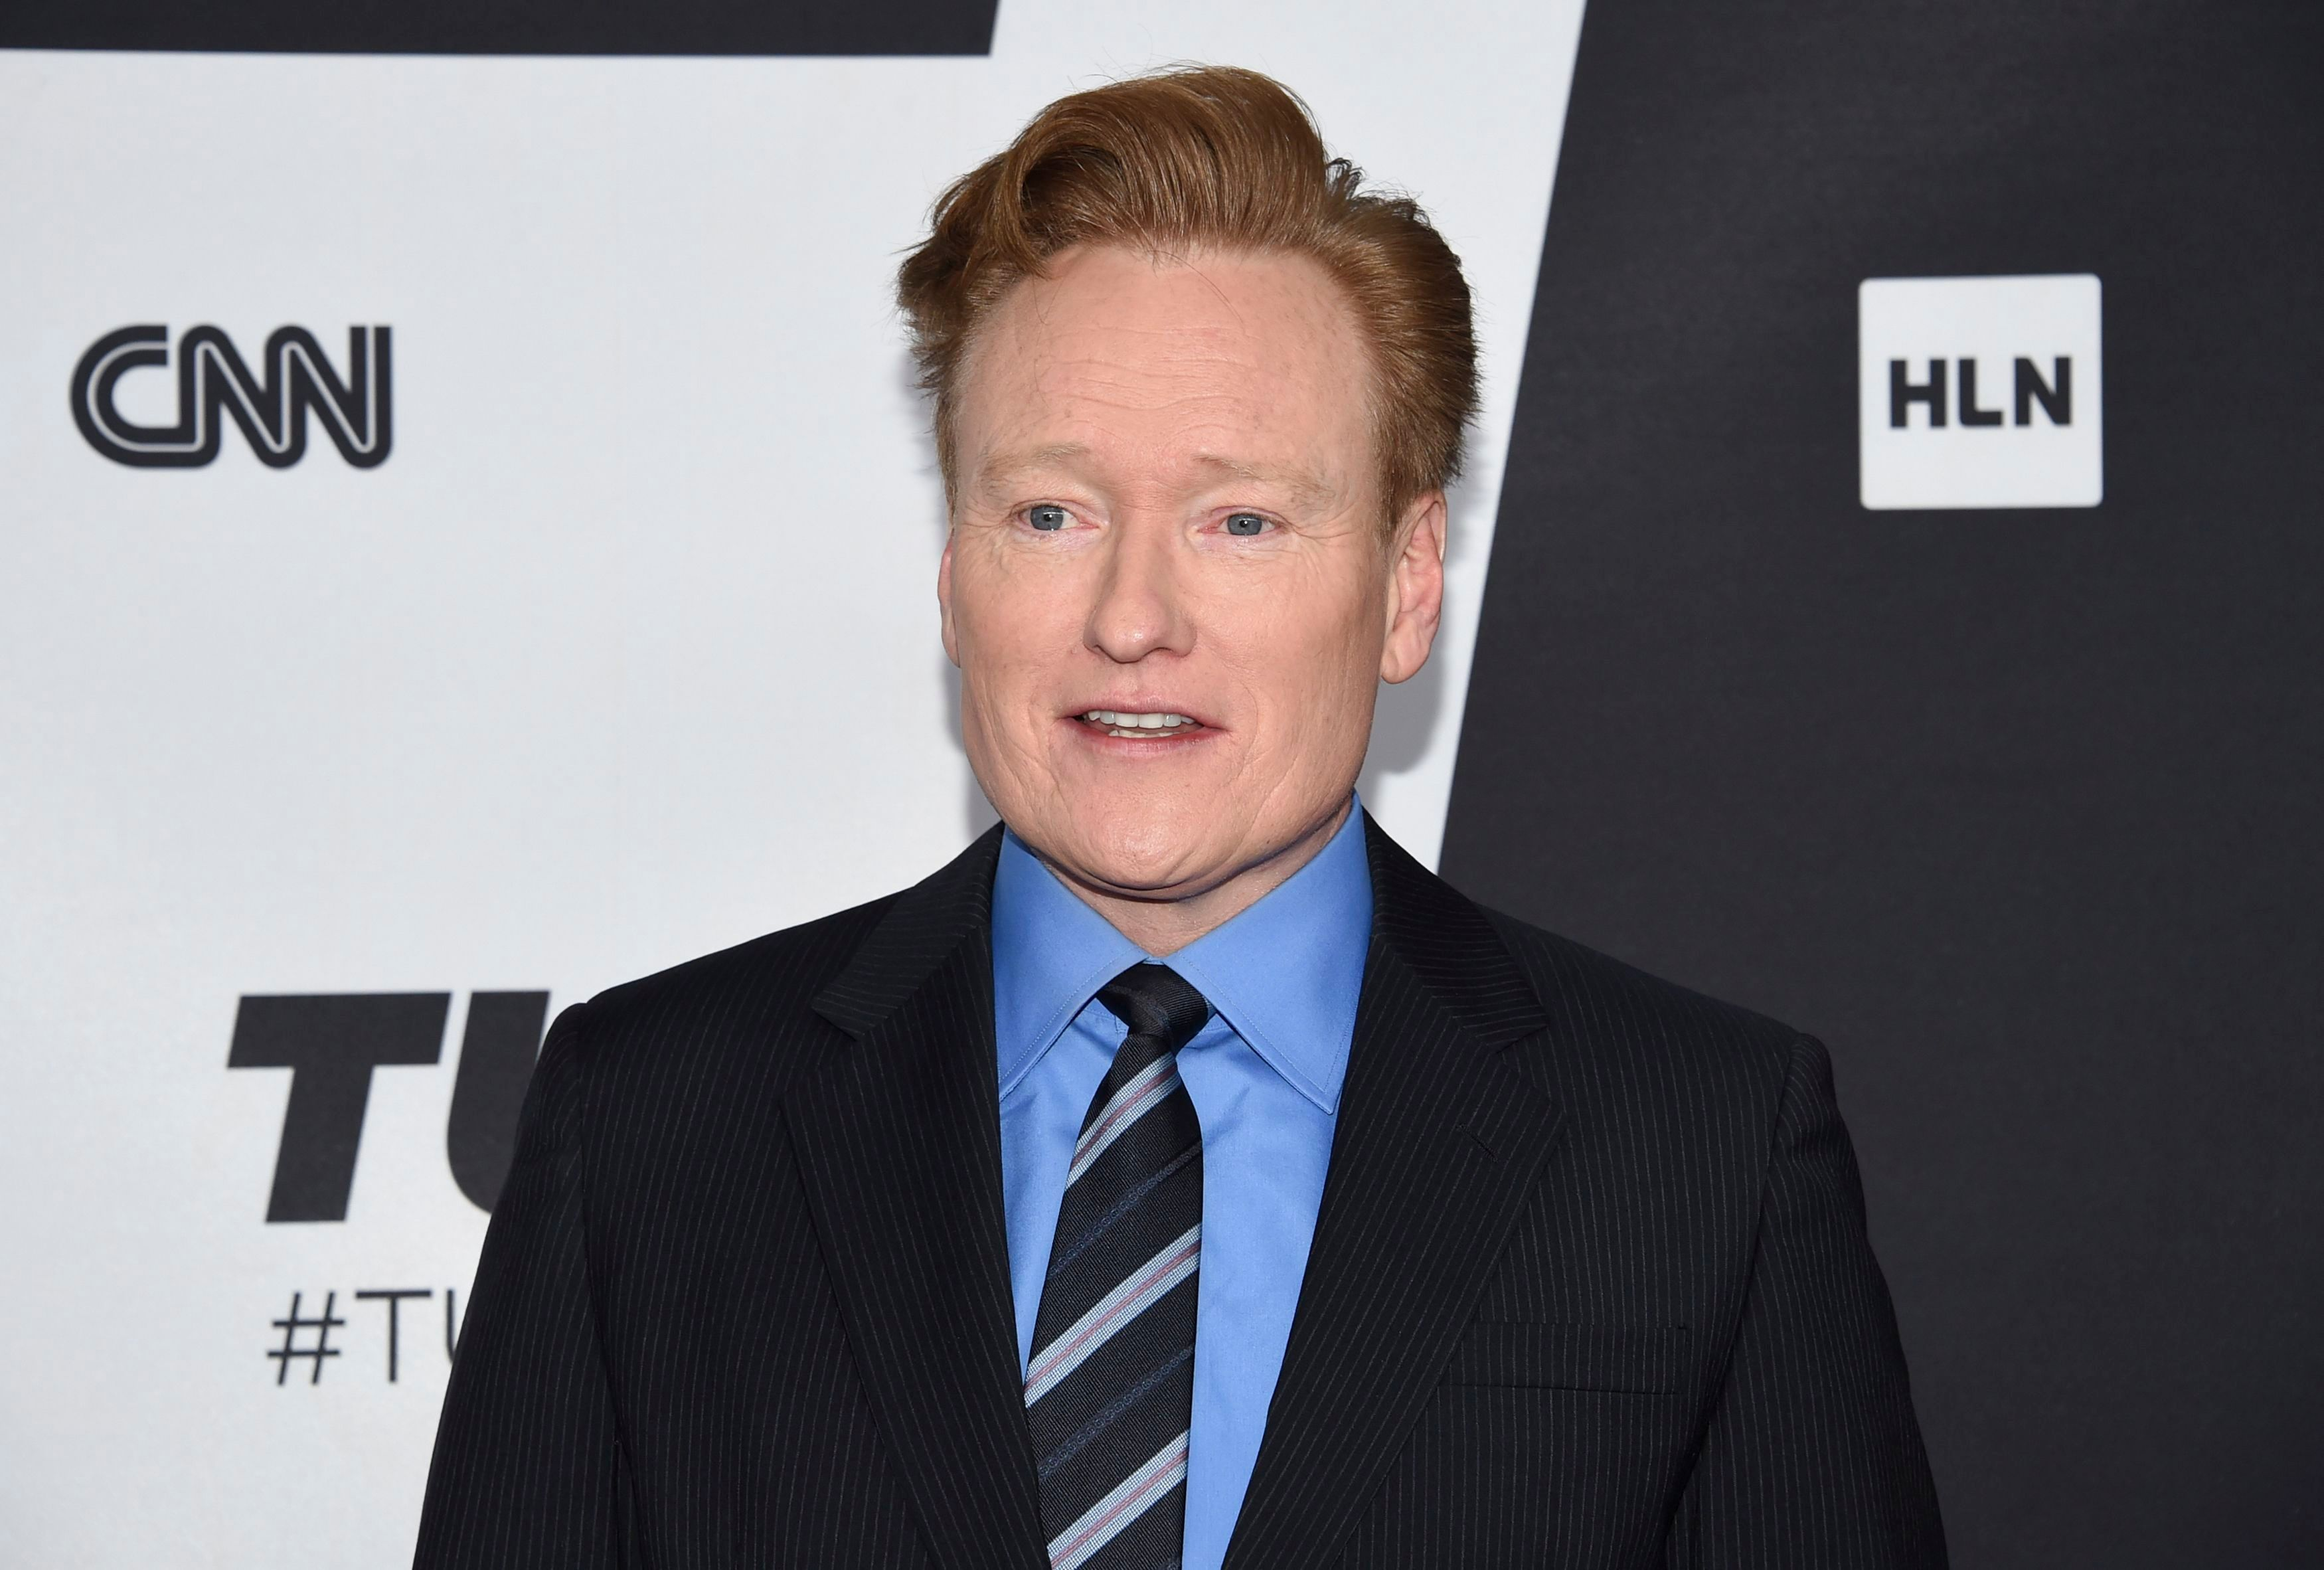 Conan O'Brien Names Director Abel Ferrara His Worst Guest in 25 Years — Here's Why